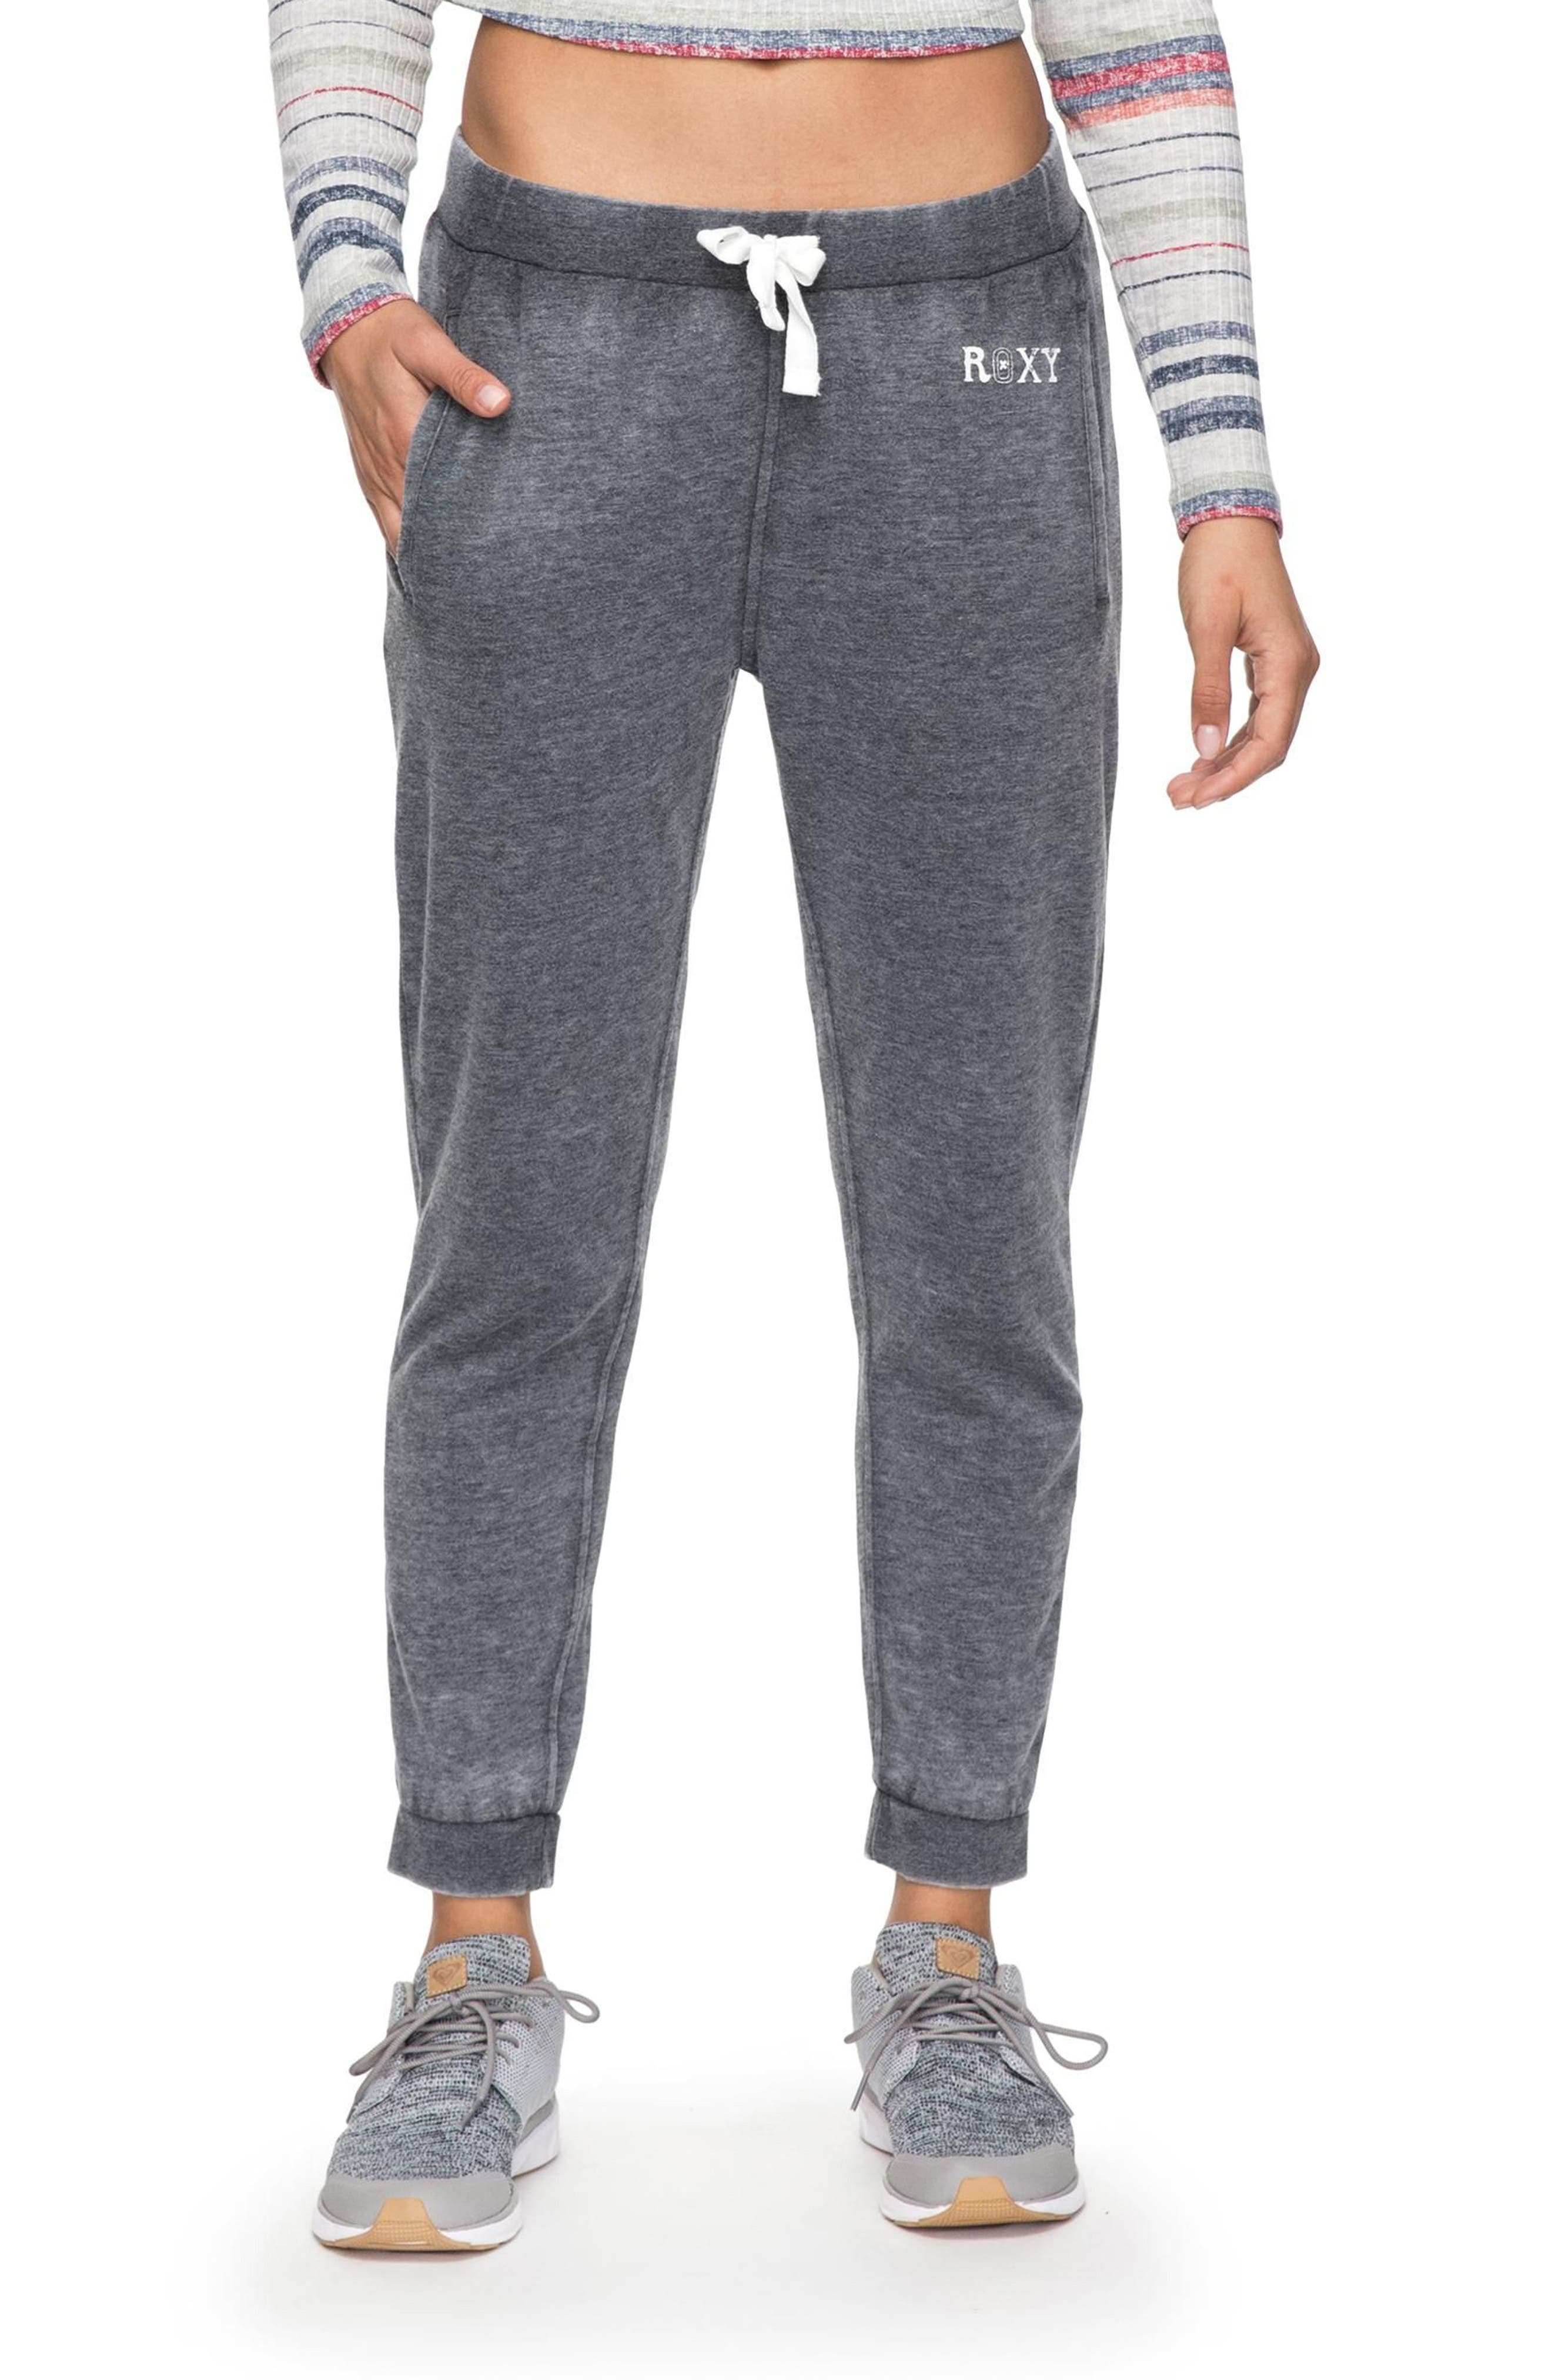 Groovy Song Tidewall Jogger Pants,                         Main,                         color, Anthracite